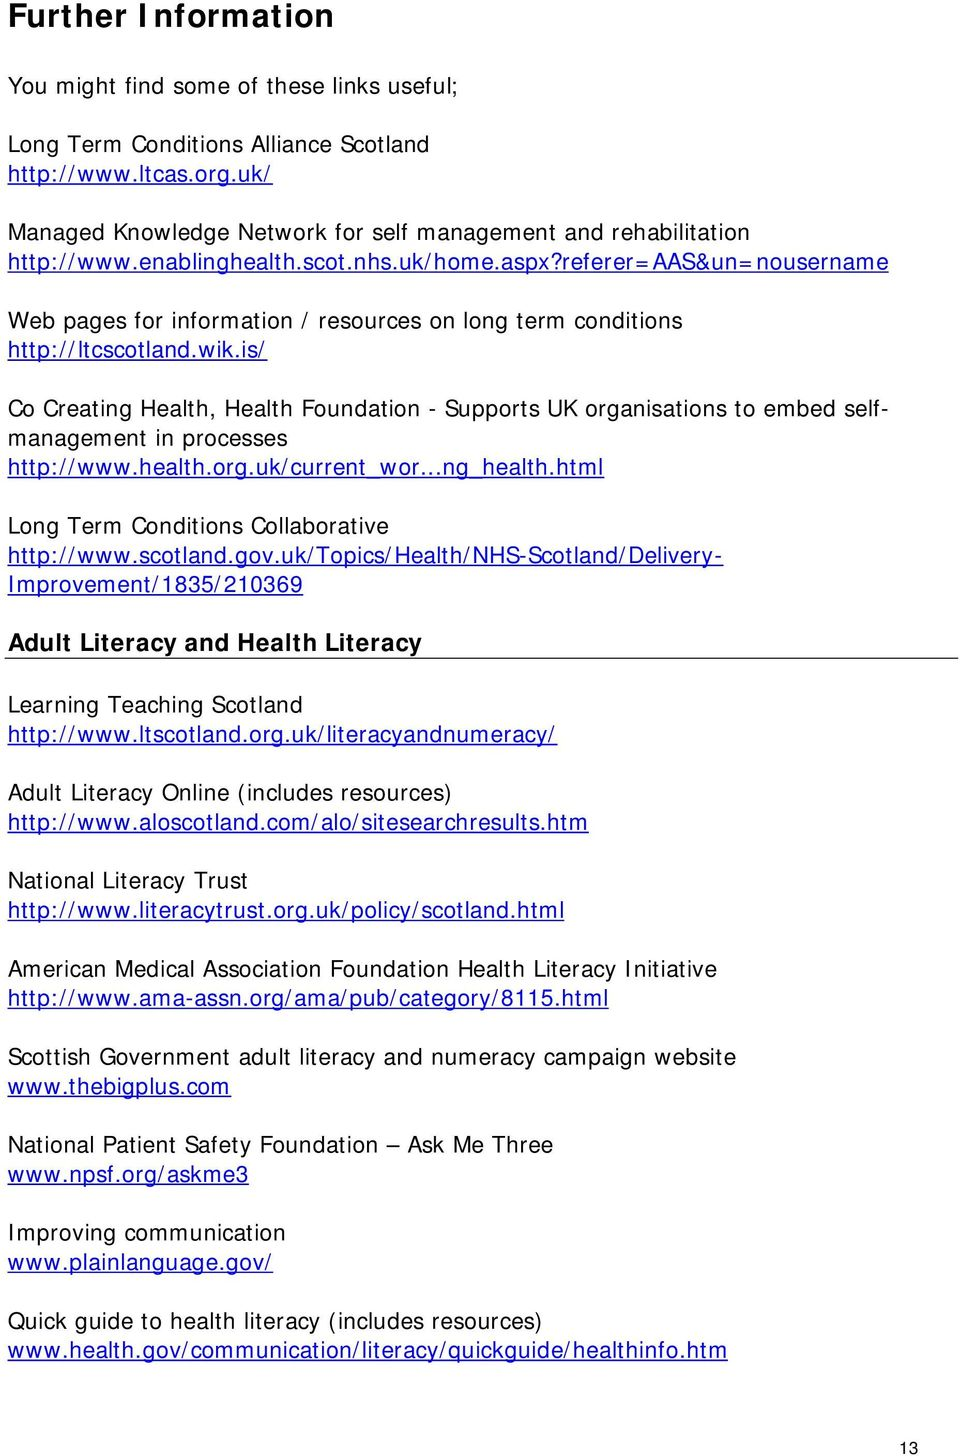 referer=aas&un=nousername Web pages for information / resources on long term conditions http://ltcscotland.wik.